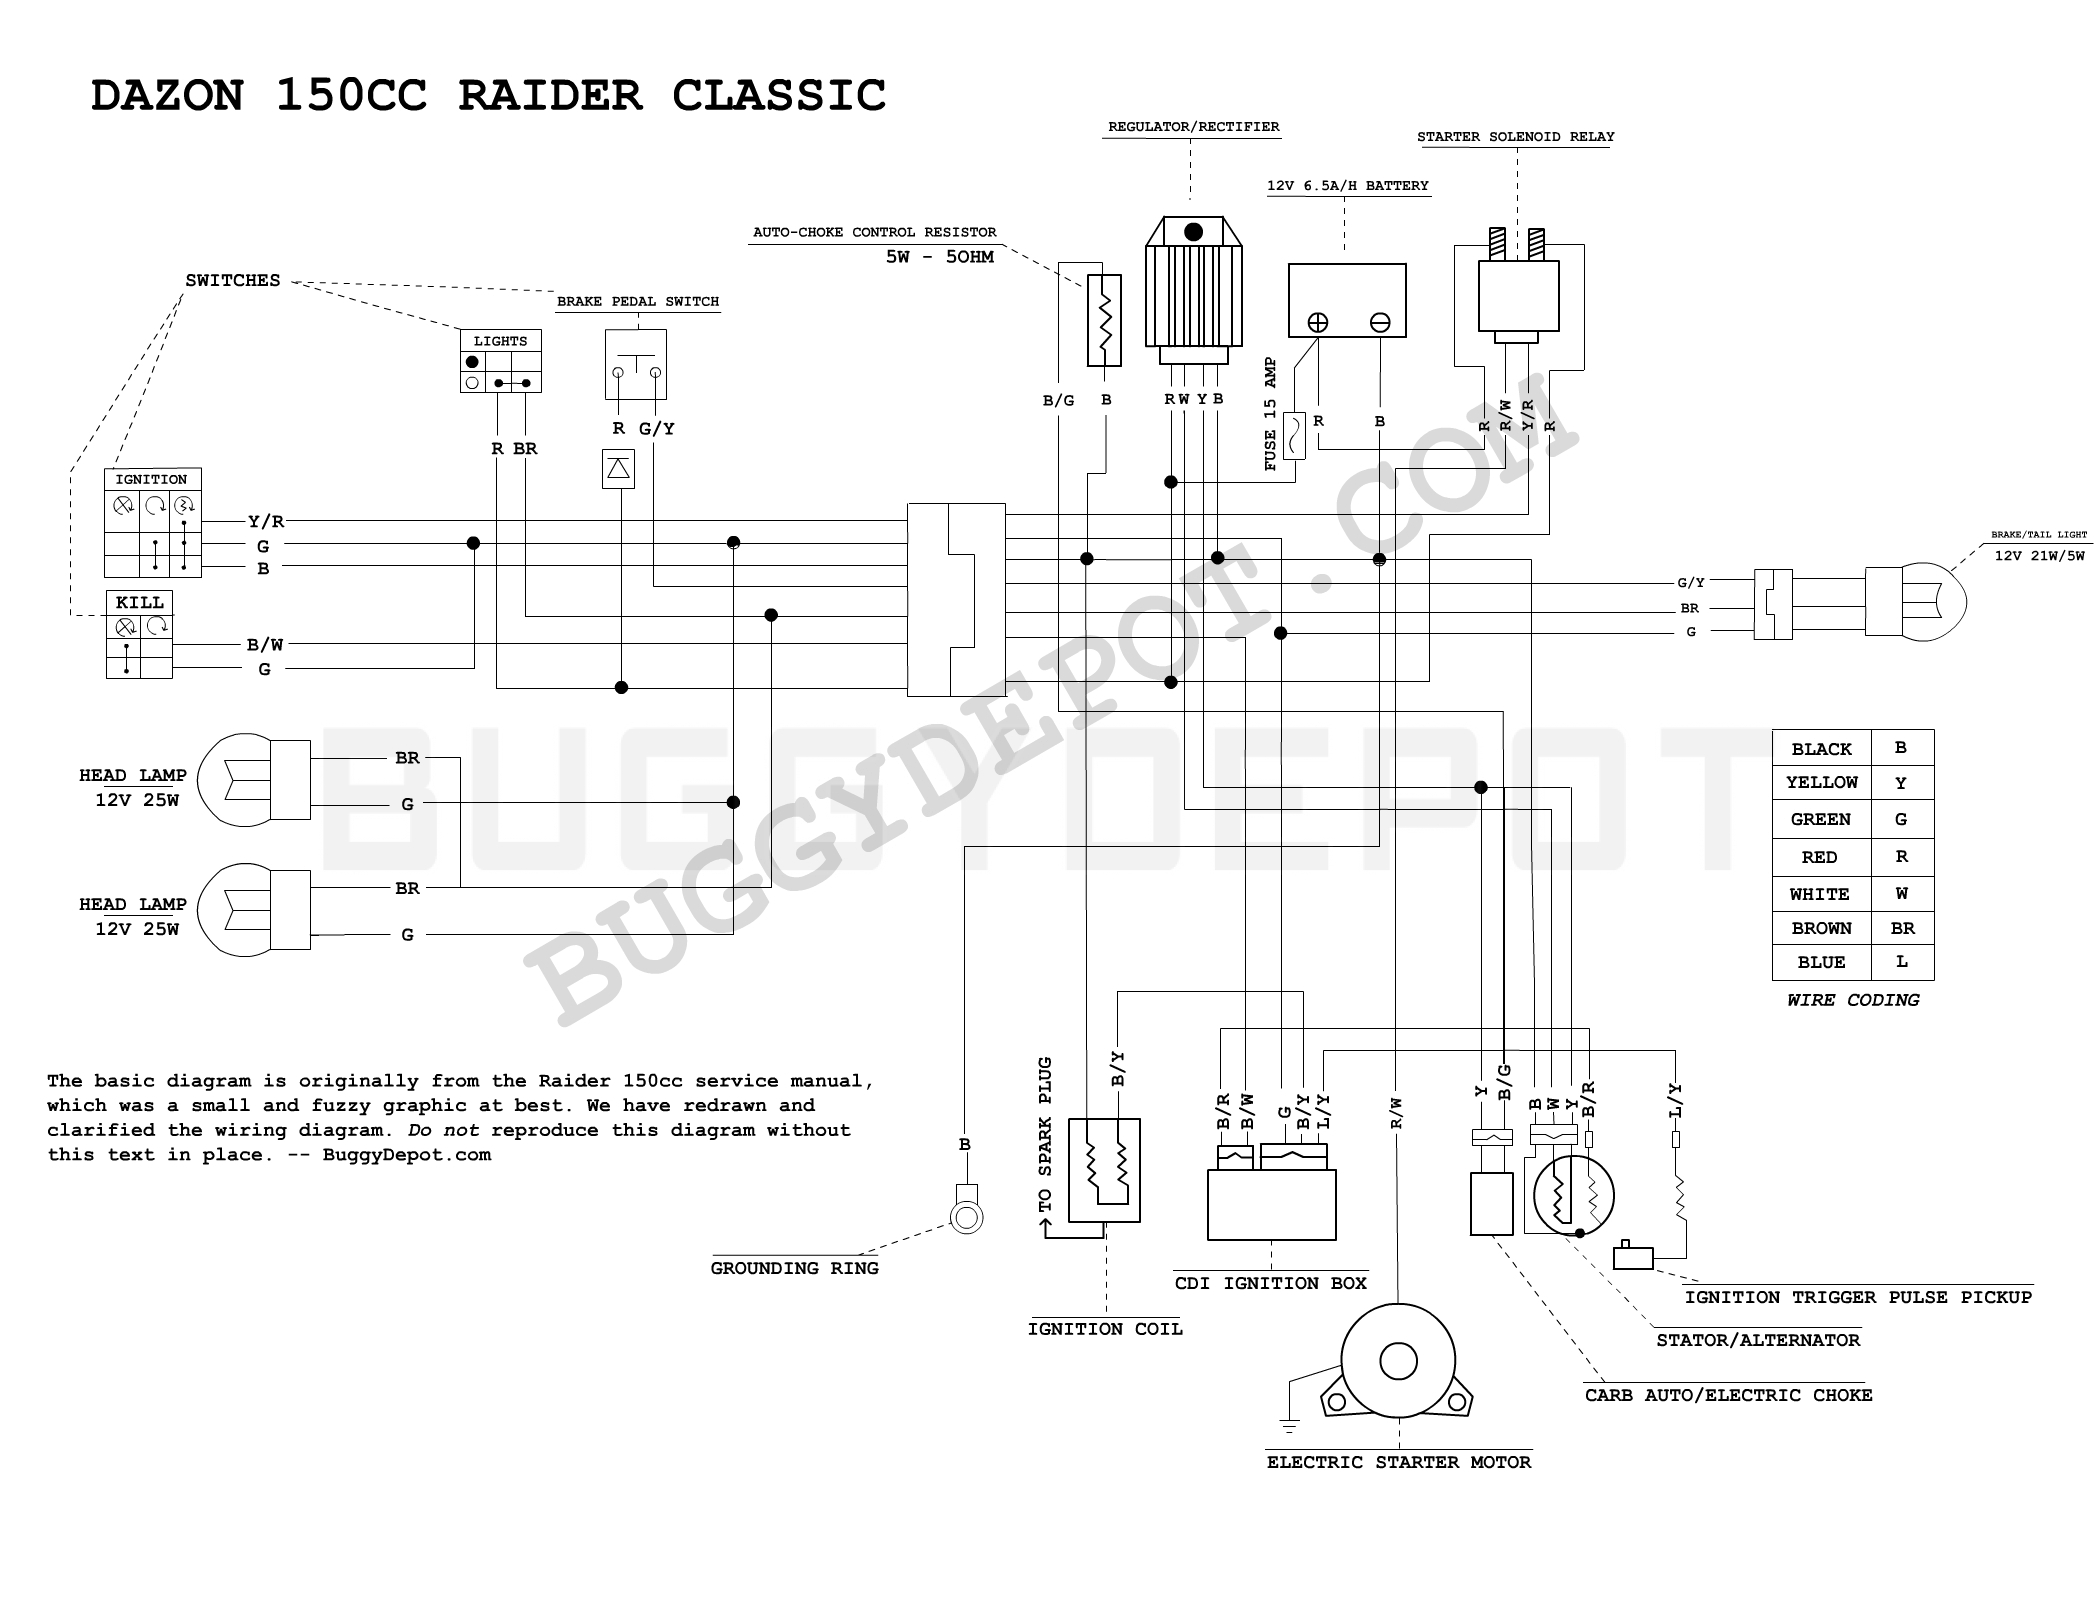 dazon raider classic - wiring diagram - buggy depot technical center,Wiring diagram,Wiring Diagram For A Gy6 Carter Go Cart